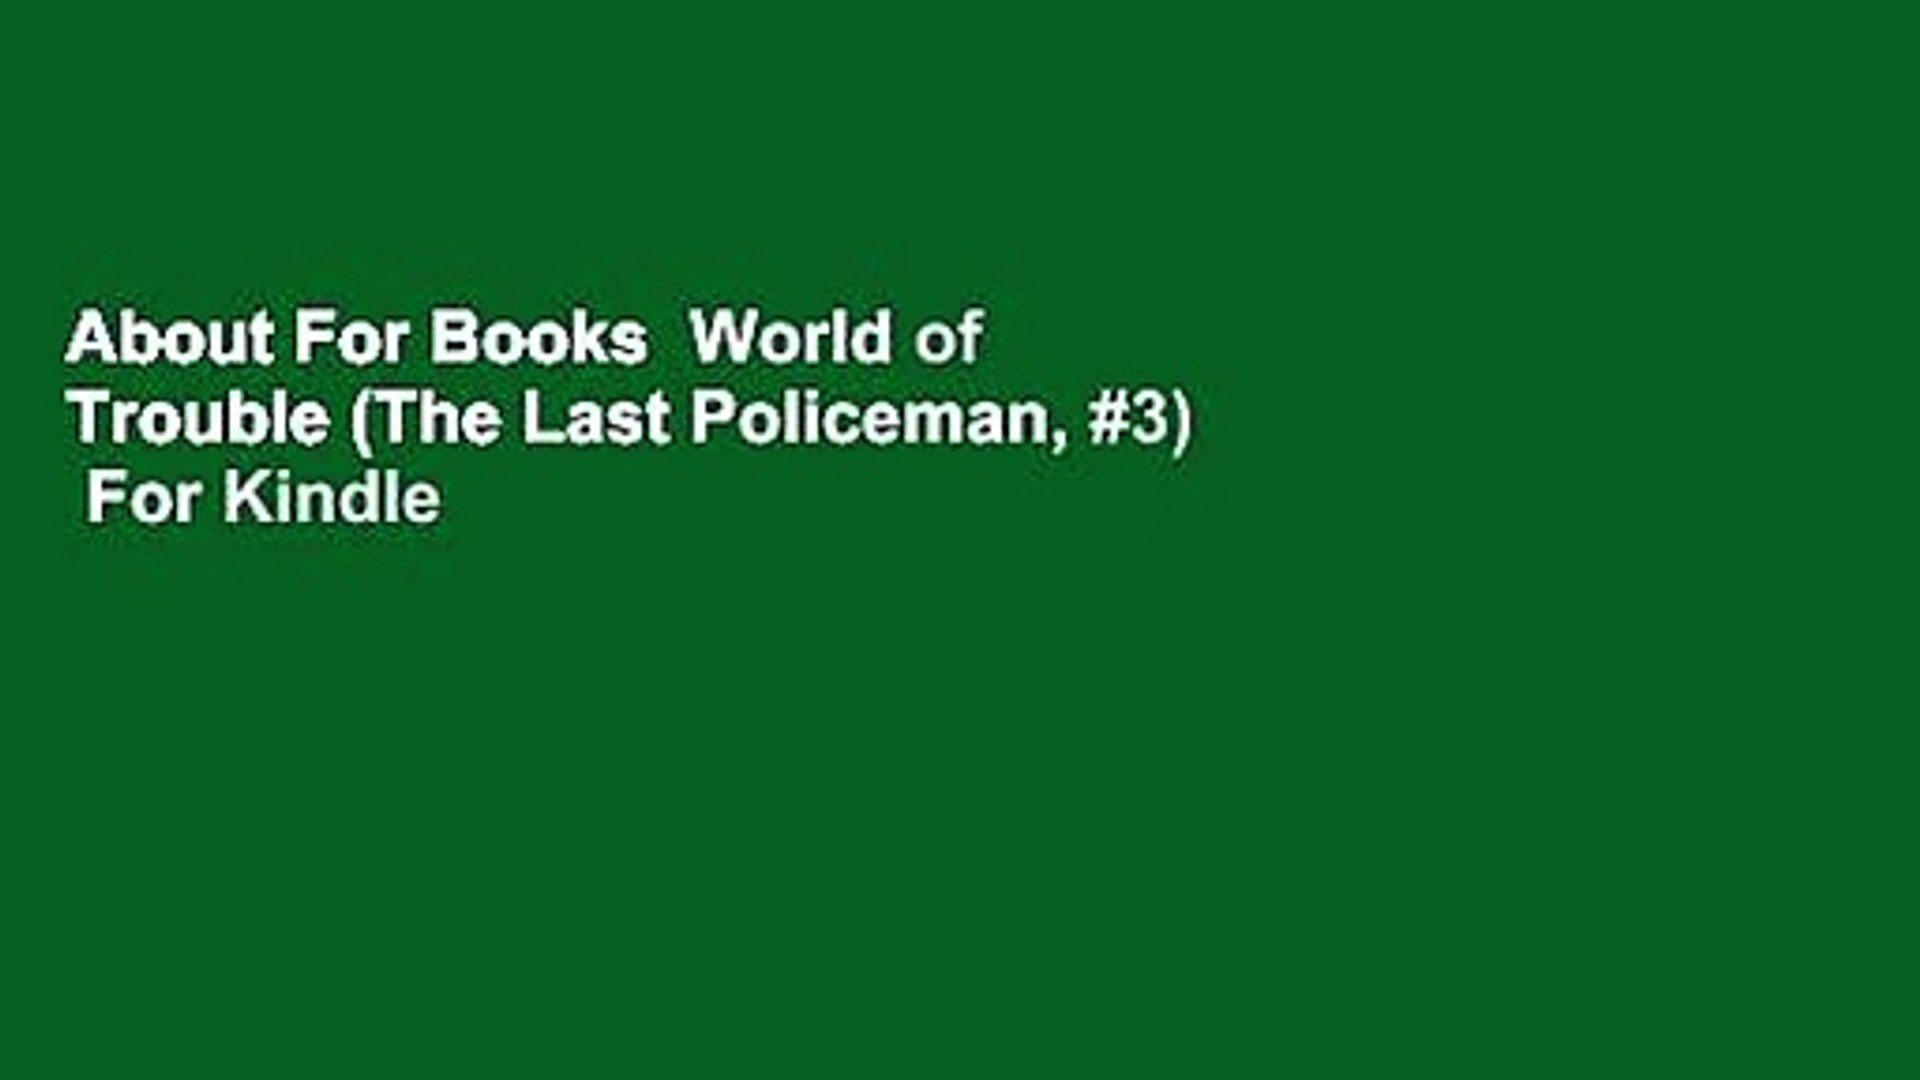 About For Books  World of Trouble (The Last Policeman, #3)  For Kindle